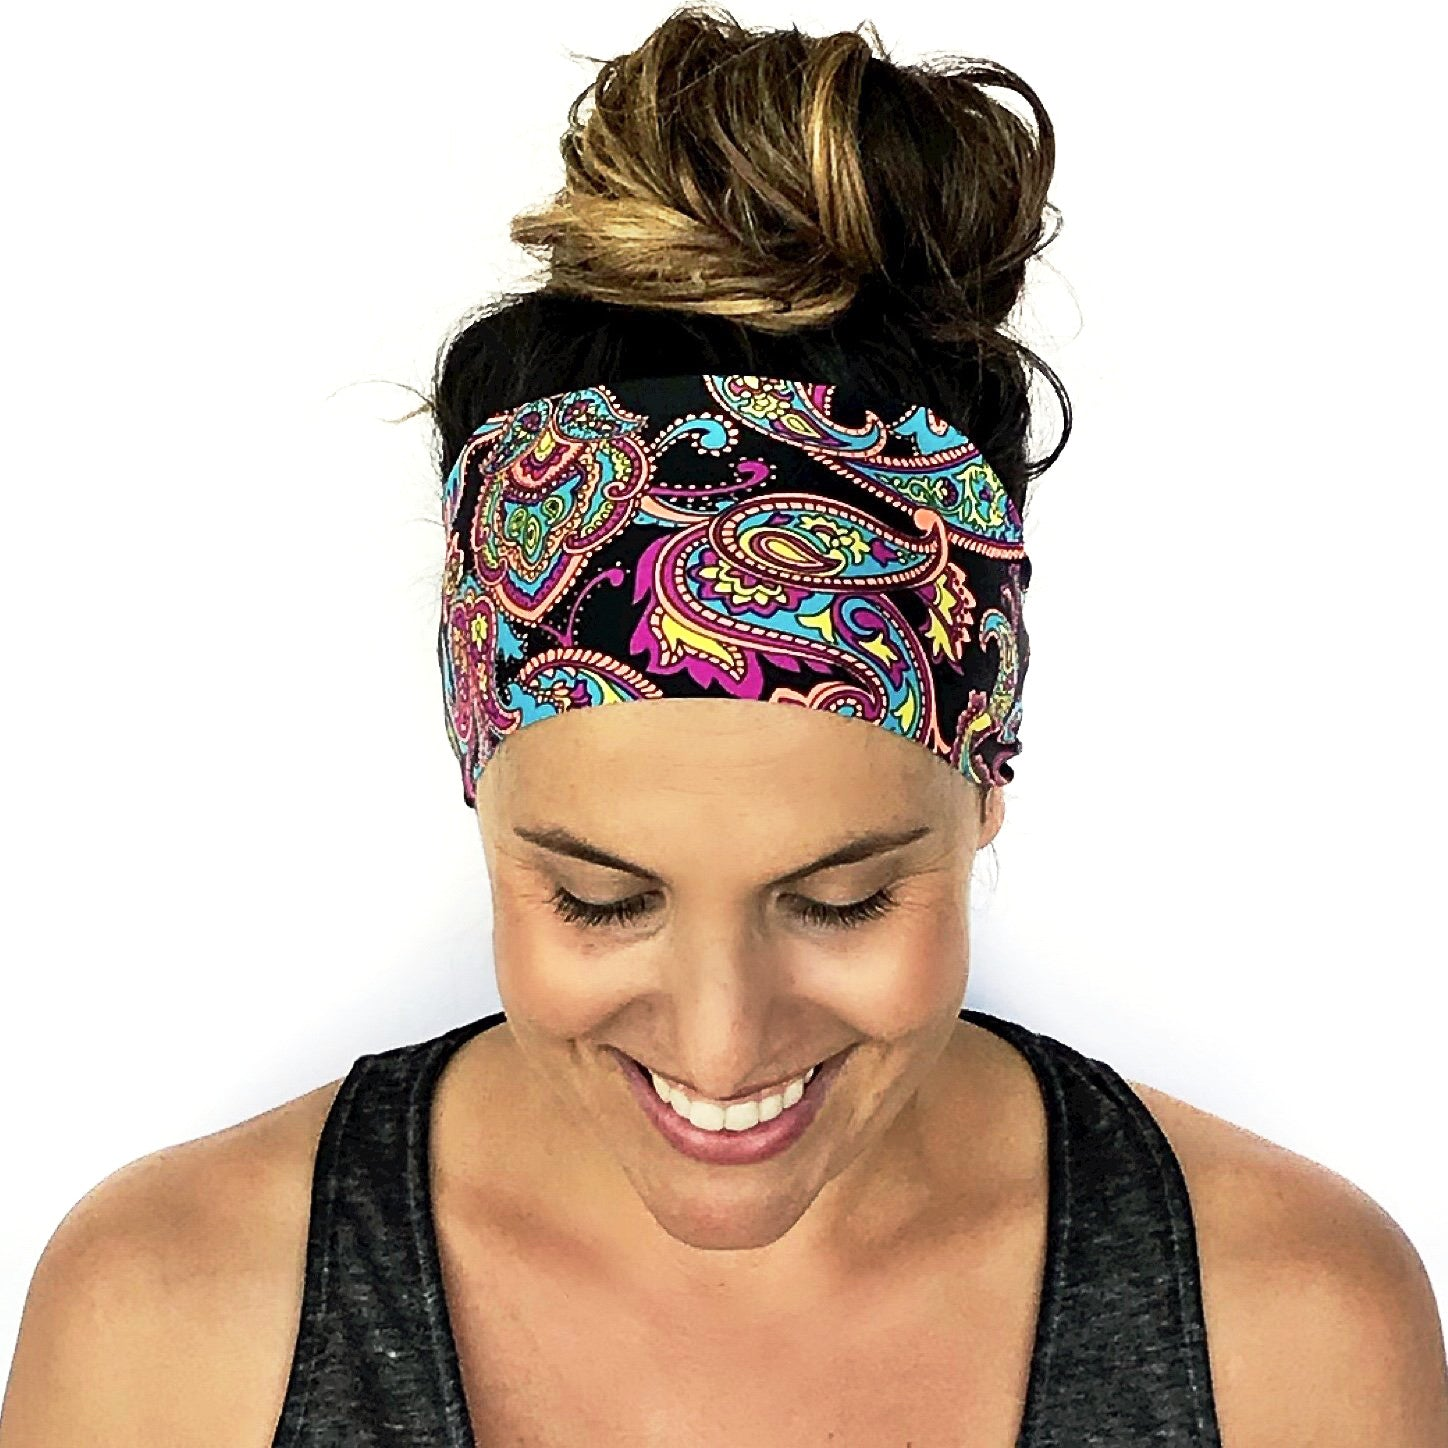 Lissie Workout Headband